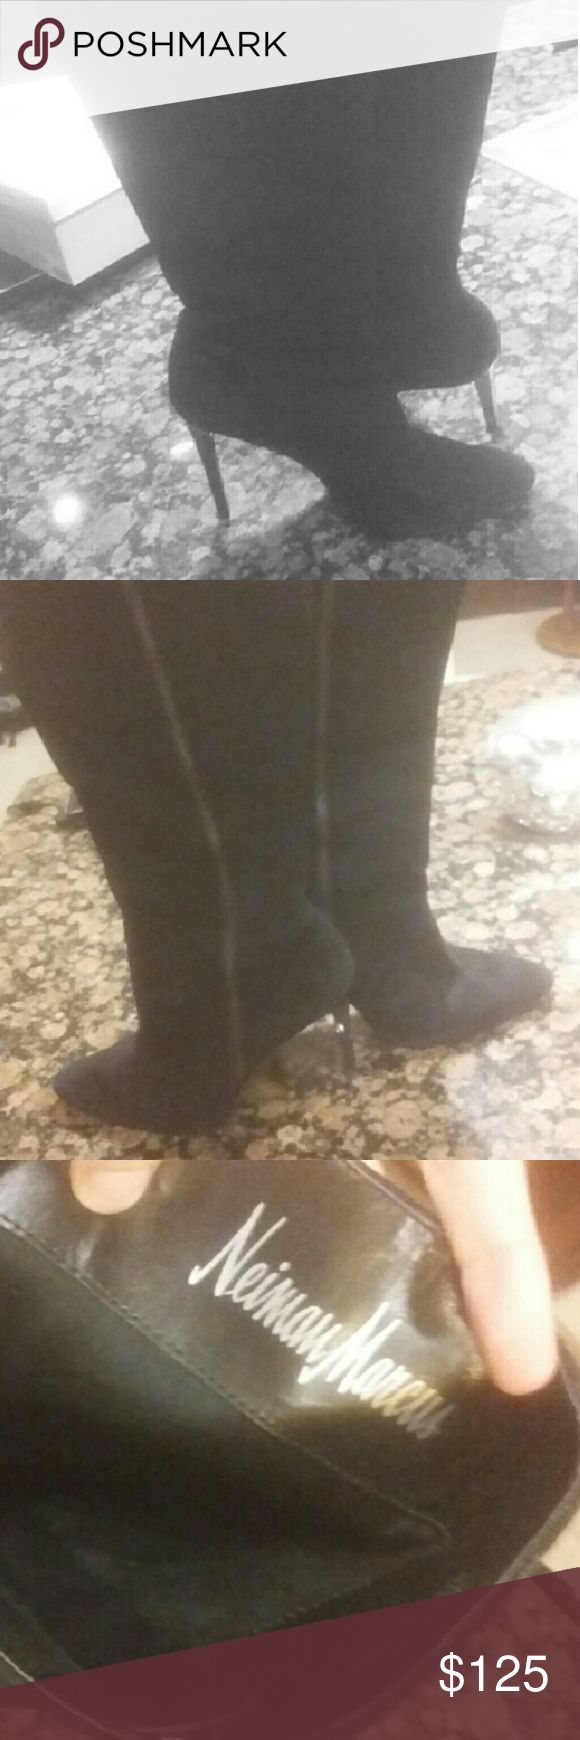 Neiman Marcus Knee high heel black suede boots These go right below the knee. A little dirt on the bottom of the shoes but overall they're in great condition. Come as is, no box. Open to offers. Neiman Marcus Shoes Heeled Boots